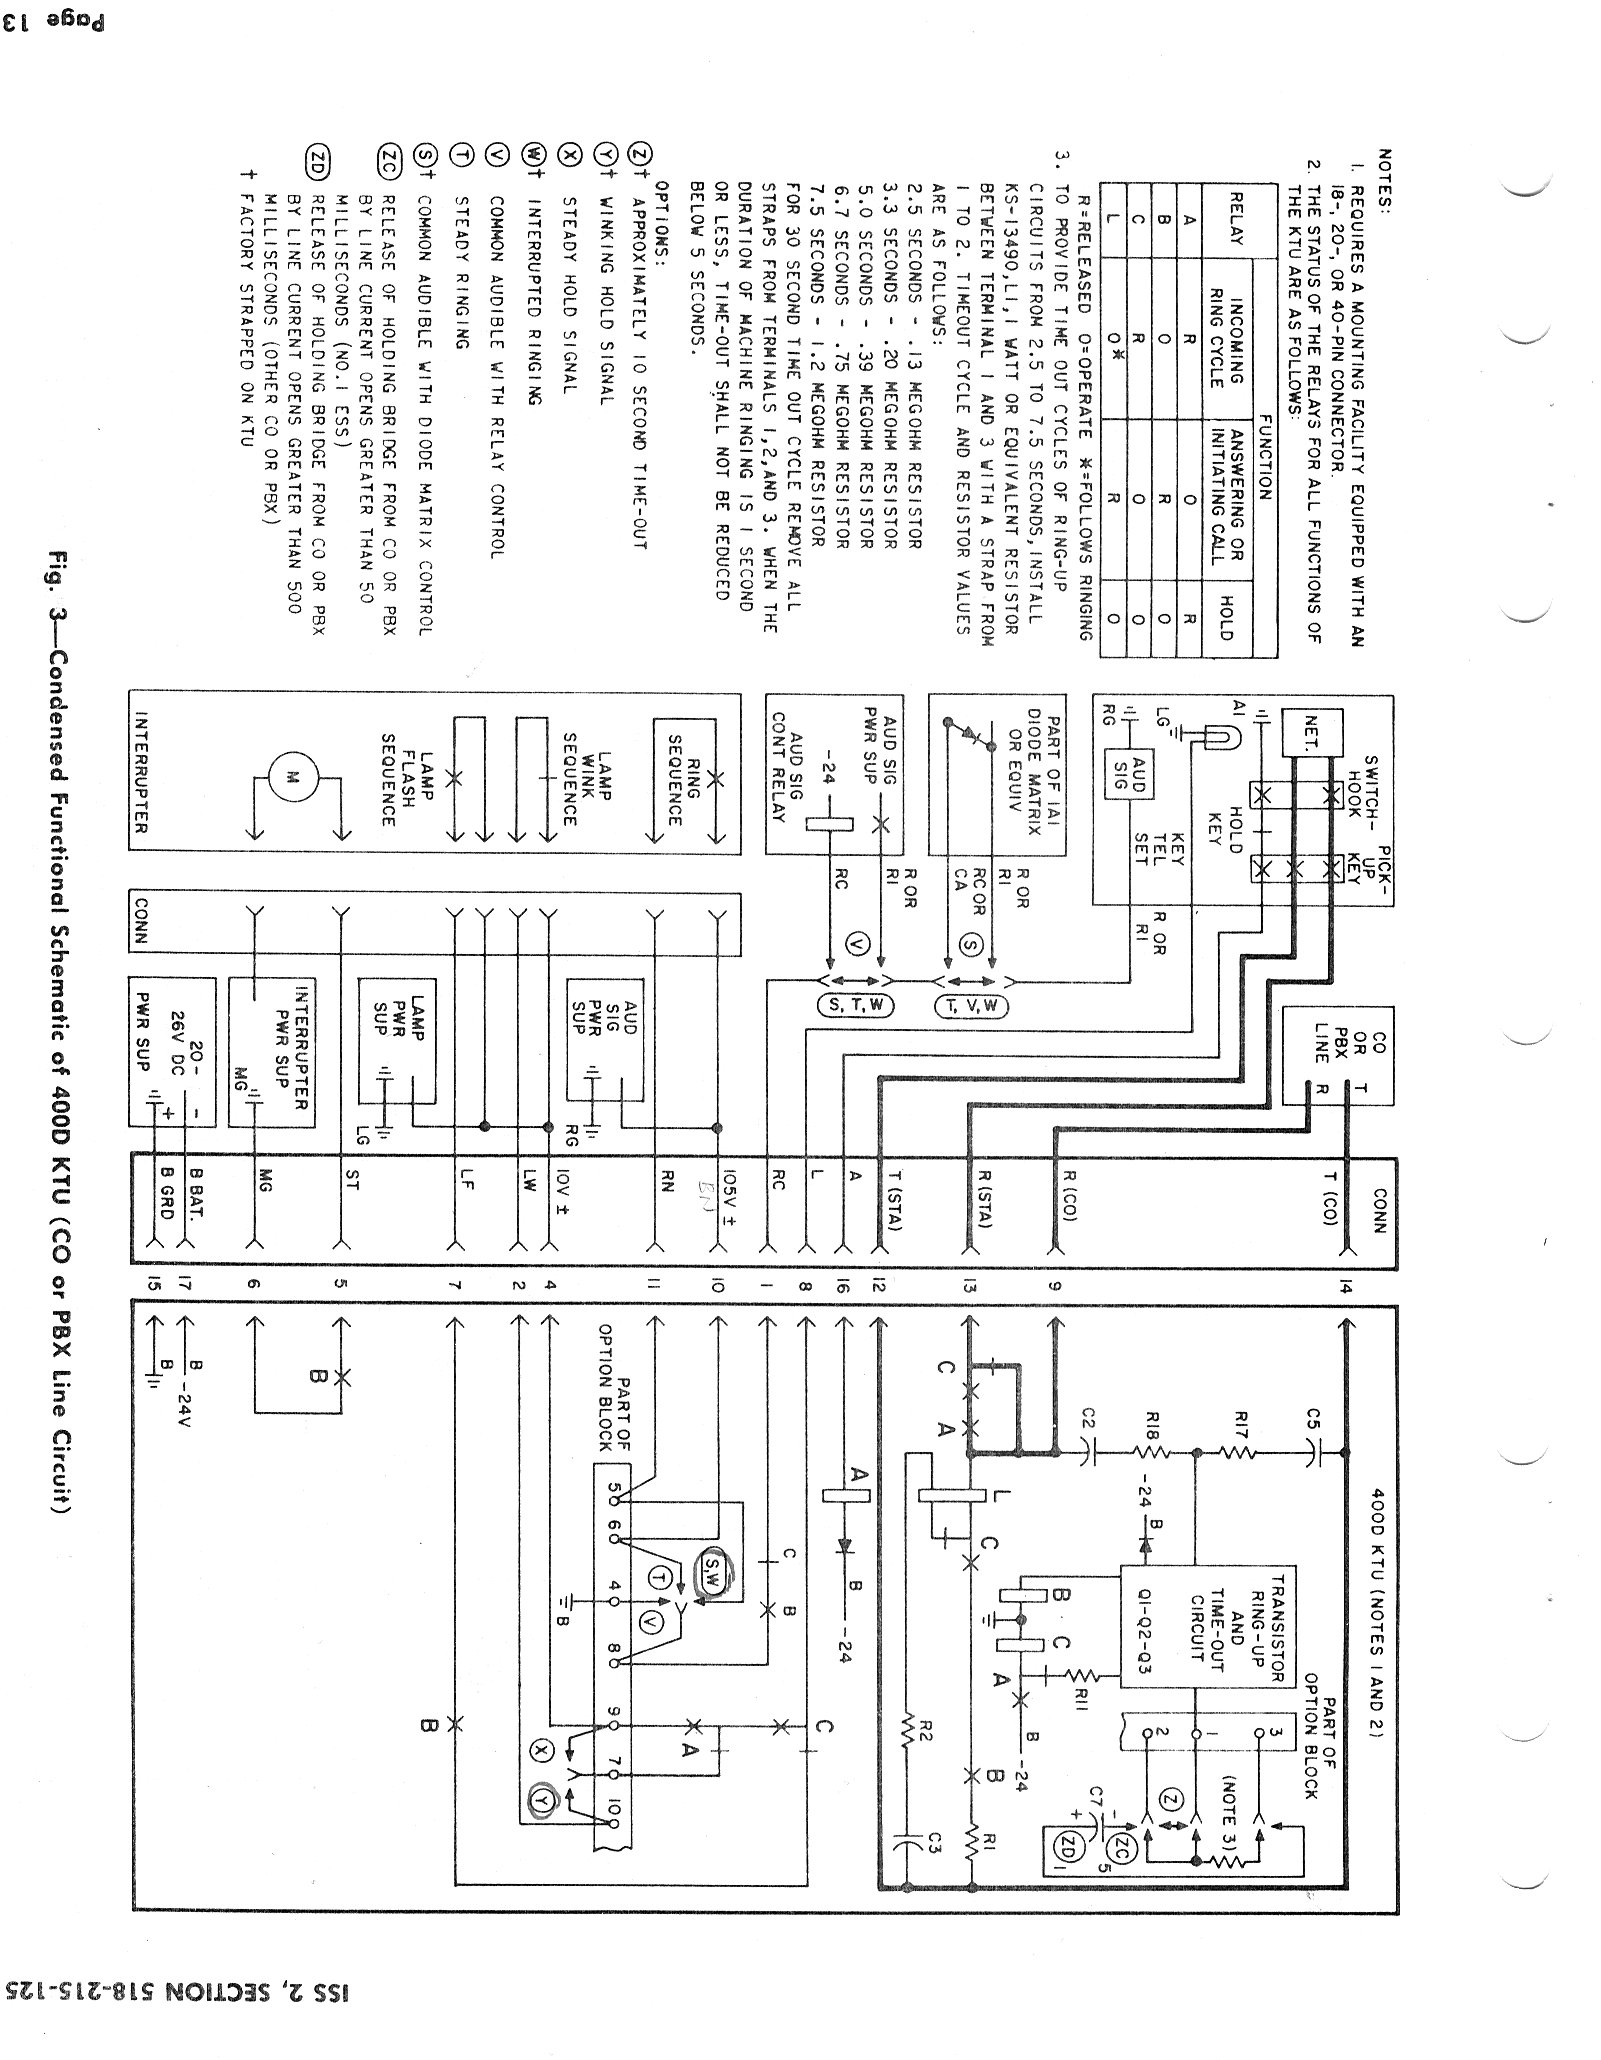 1a2 Key System Explanation Basic Wiring Diagram Look At The Upper Left Box Tel Set And See That There Are Five Wires A Ground Required Between Phone 400d Line Card Which Is In